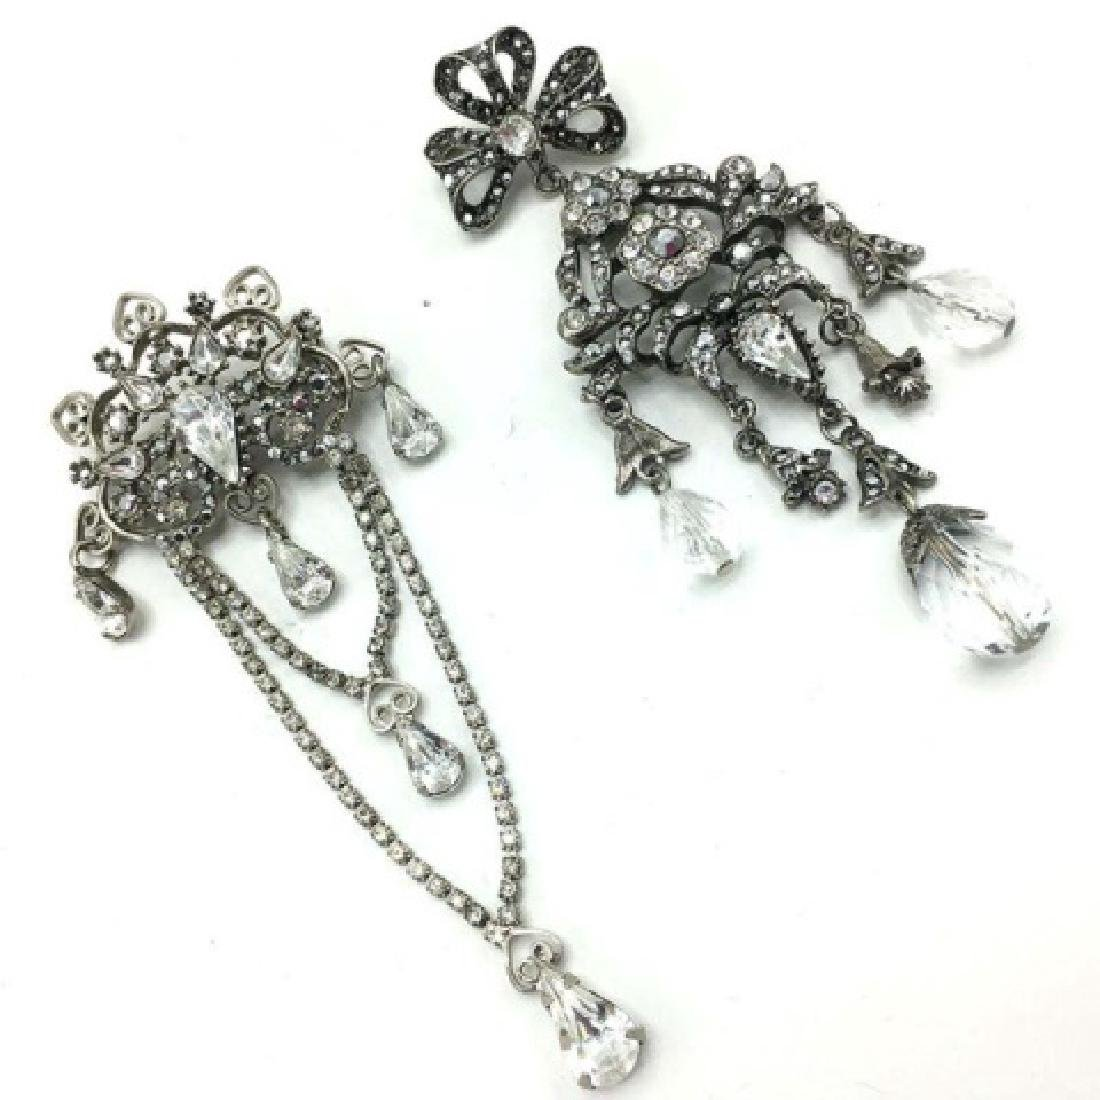 Pair of Signed Graziano Rhinestone Chandelier Pins